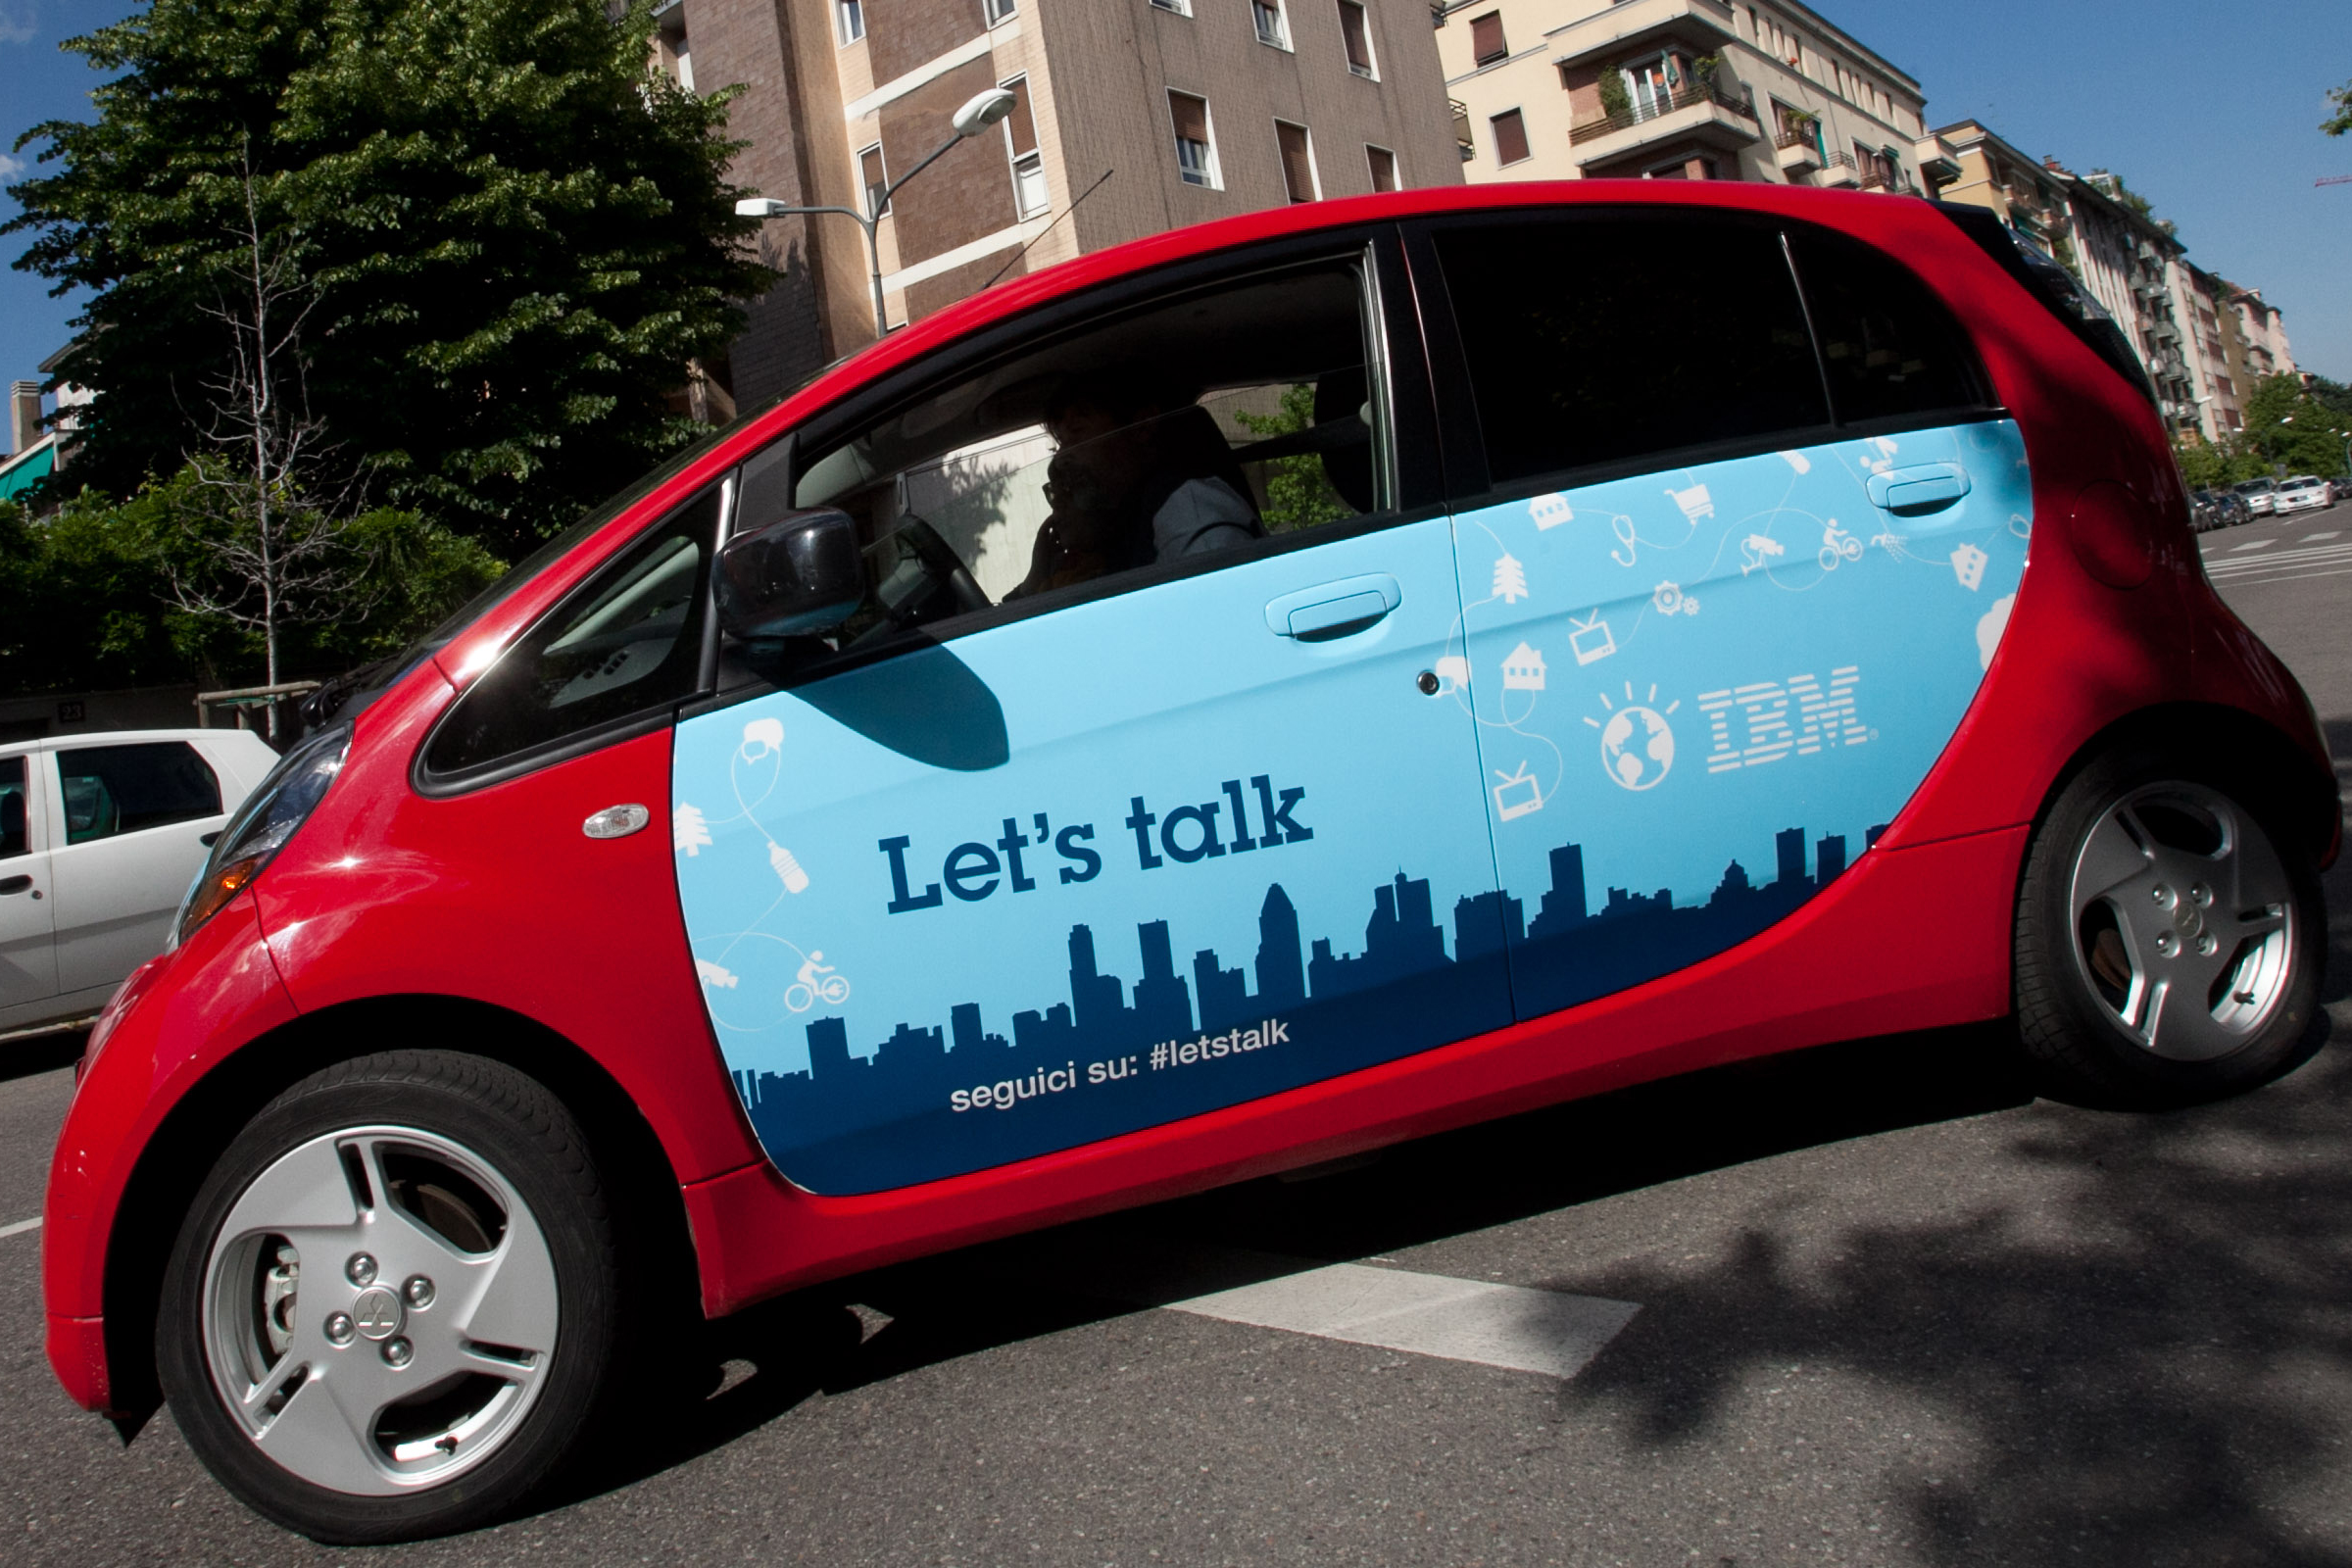 let's talk car in the streets of Milan